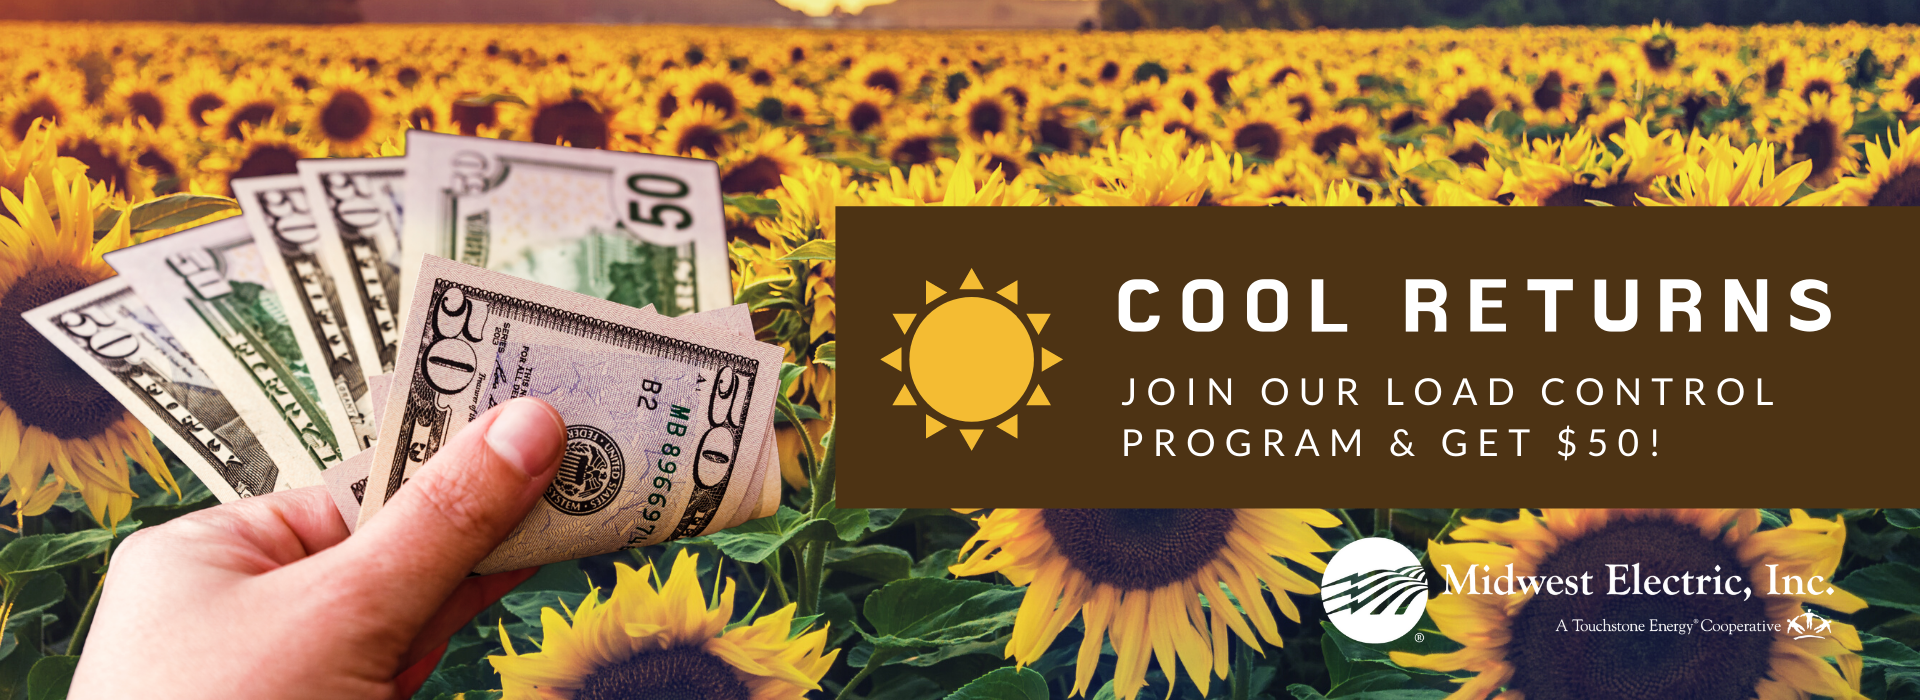 Sign up for Cool Returns and get $50